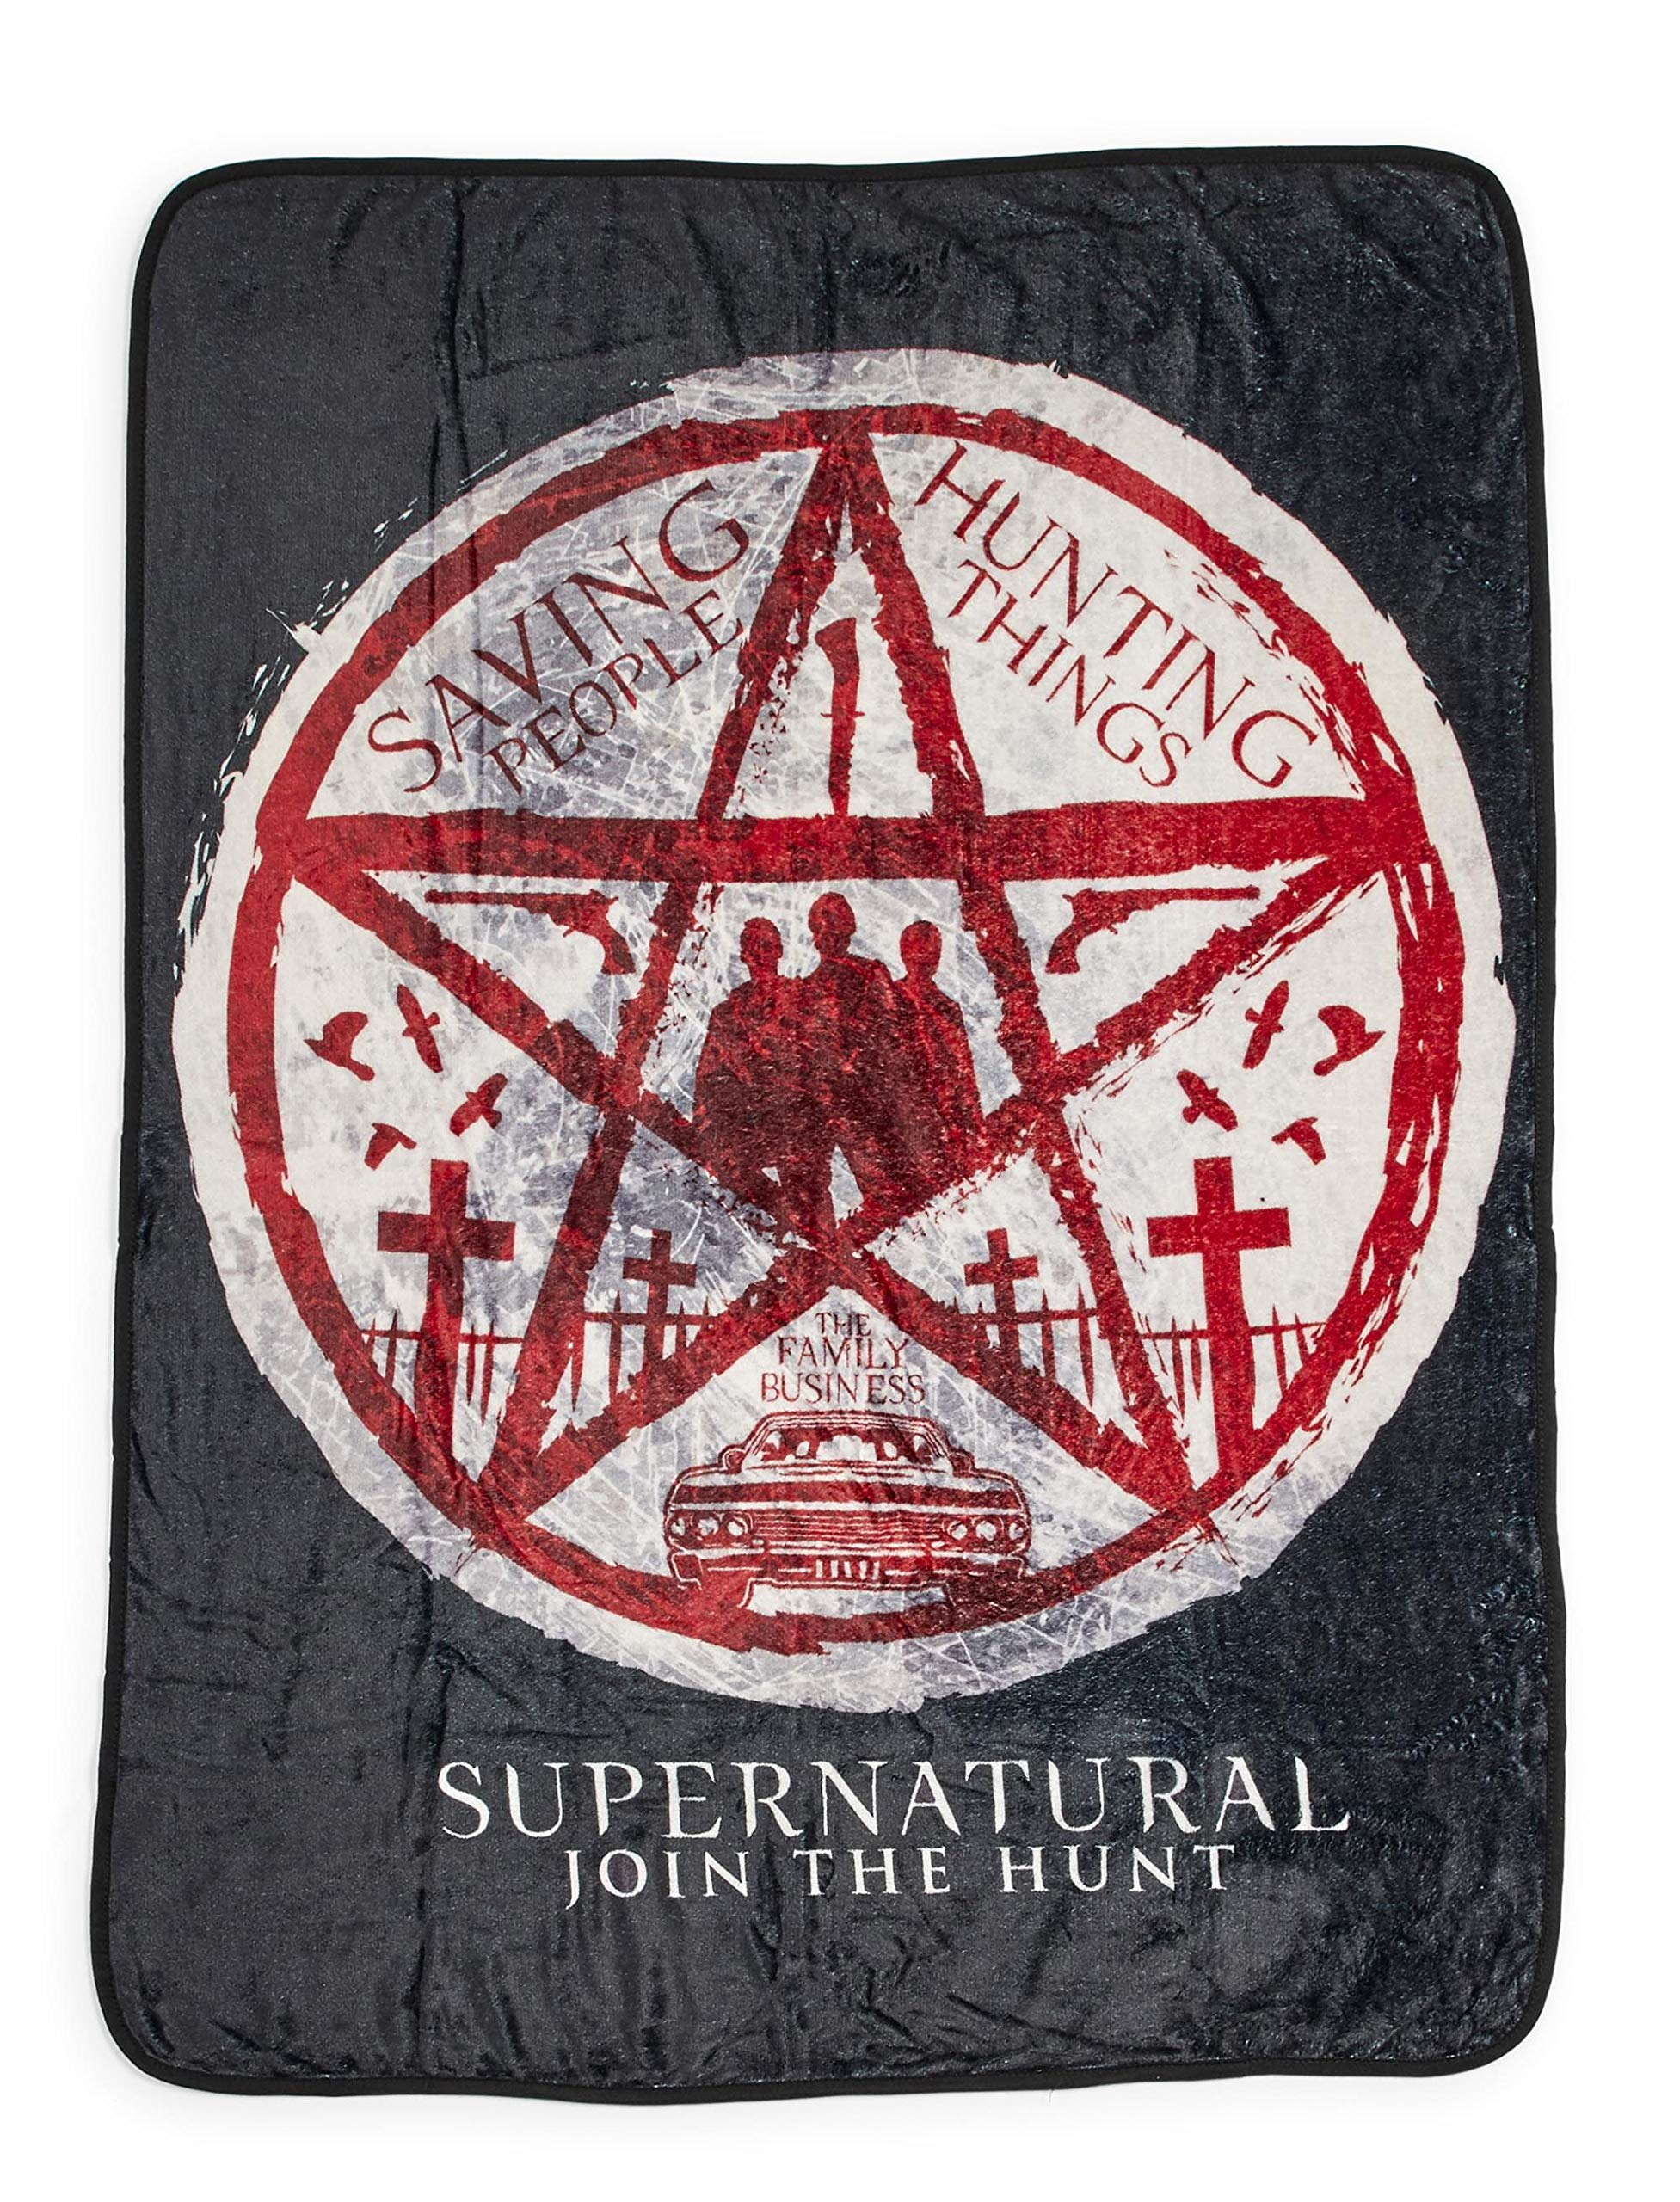 DoubleUSA Supernatural Jensen Ackles Jared Padalecki Pillowcases Two Sides Print Zipper Pillow Covers 20x30